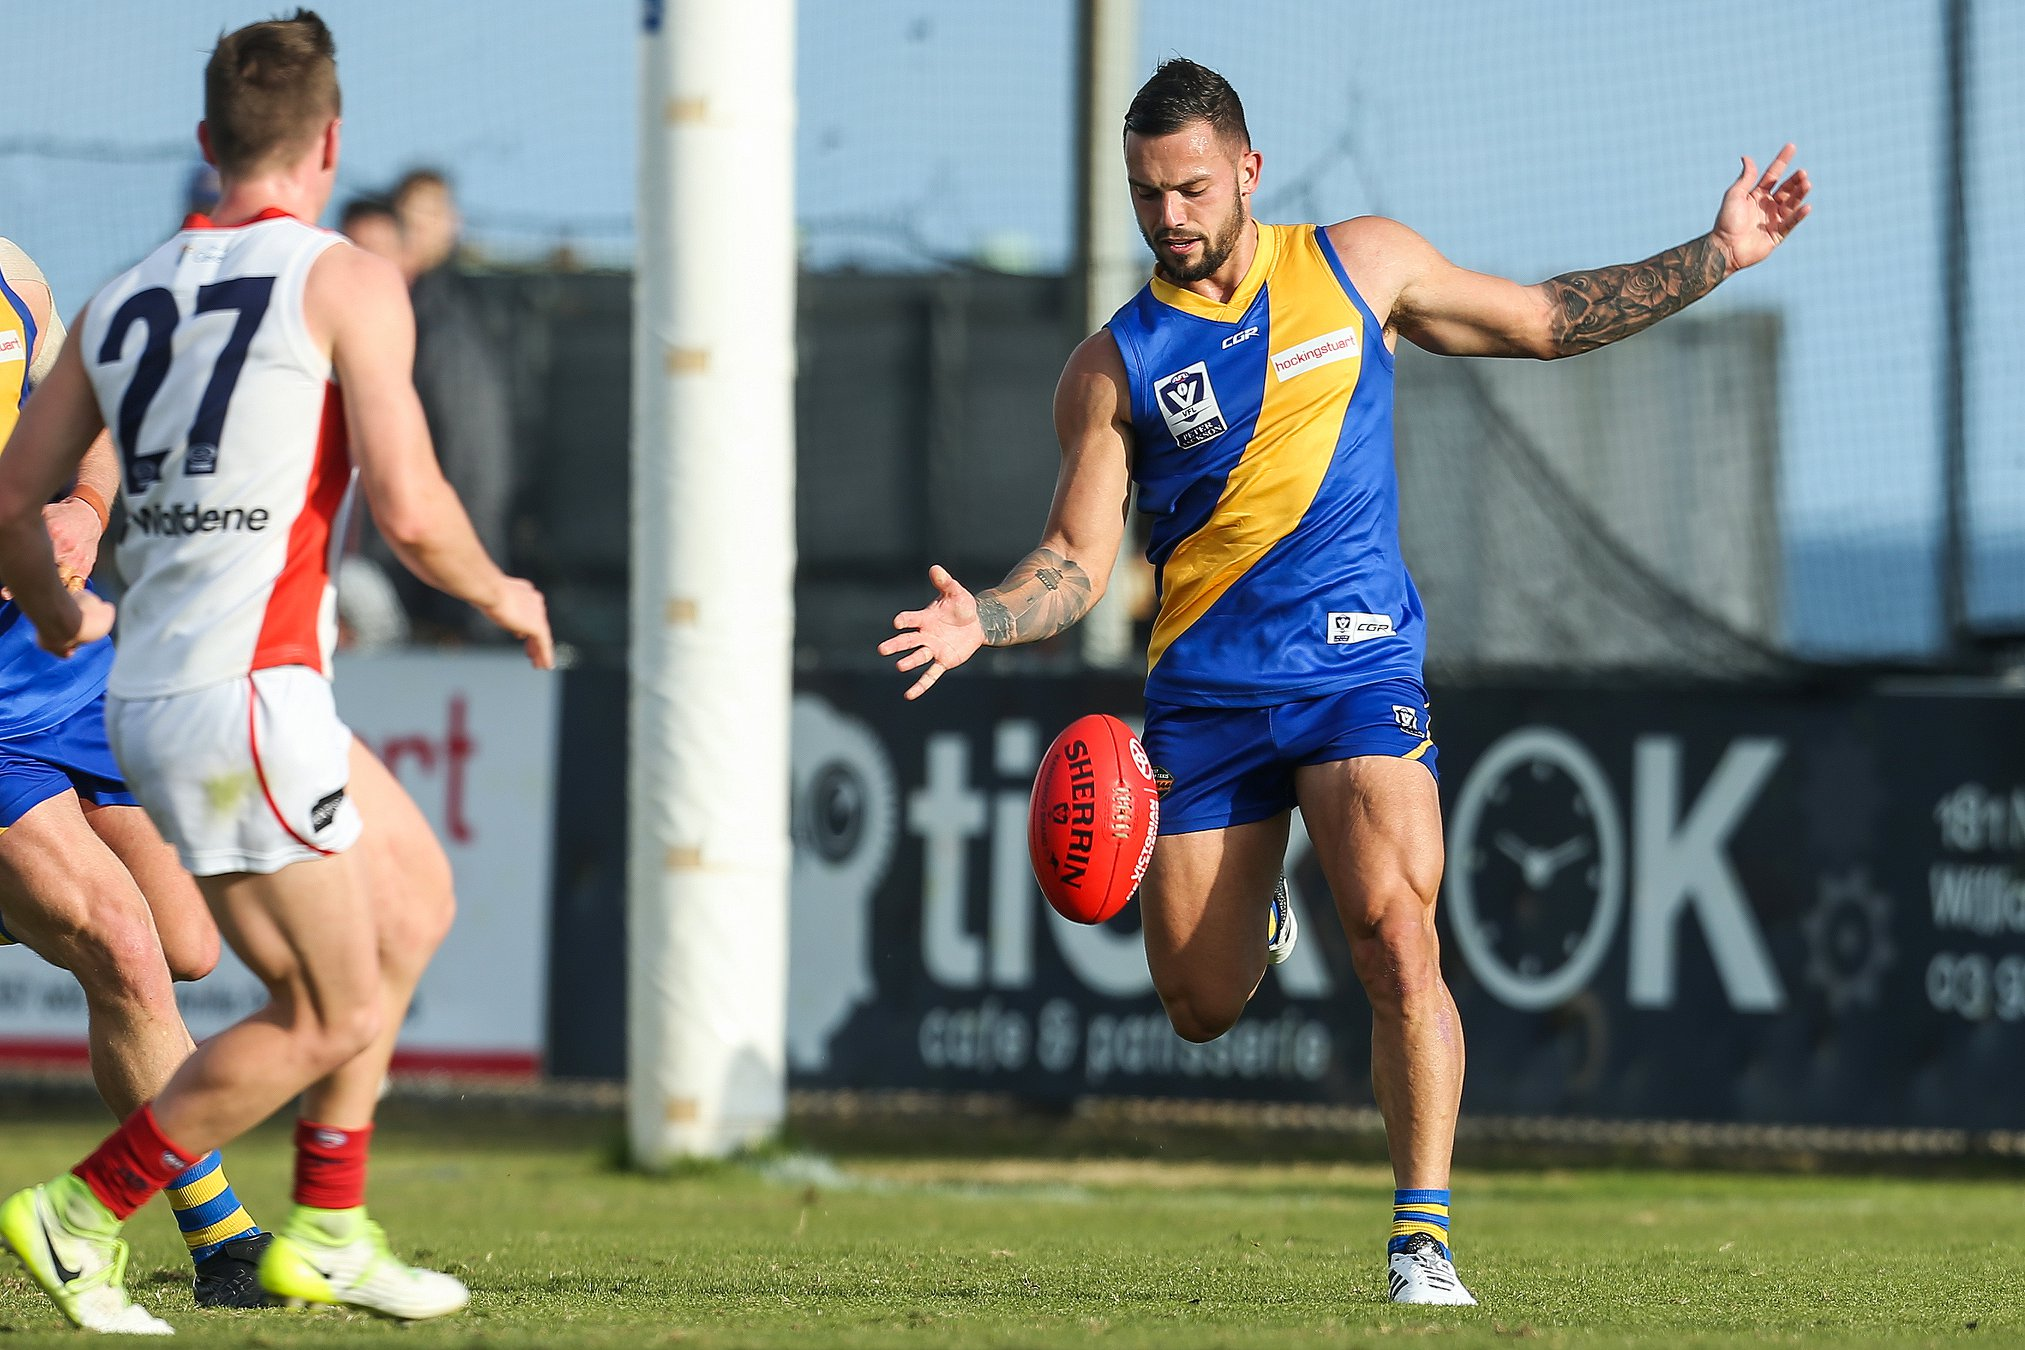 875a886d13b Williamstown Football Club can announce the re-signing of Jake Greiser and  Jack Dorgan ahead of the 2019 season. Grieser had a terrific 2018 season ...